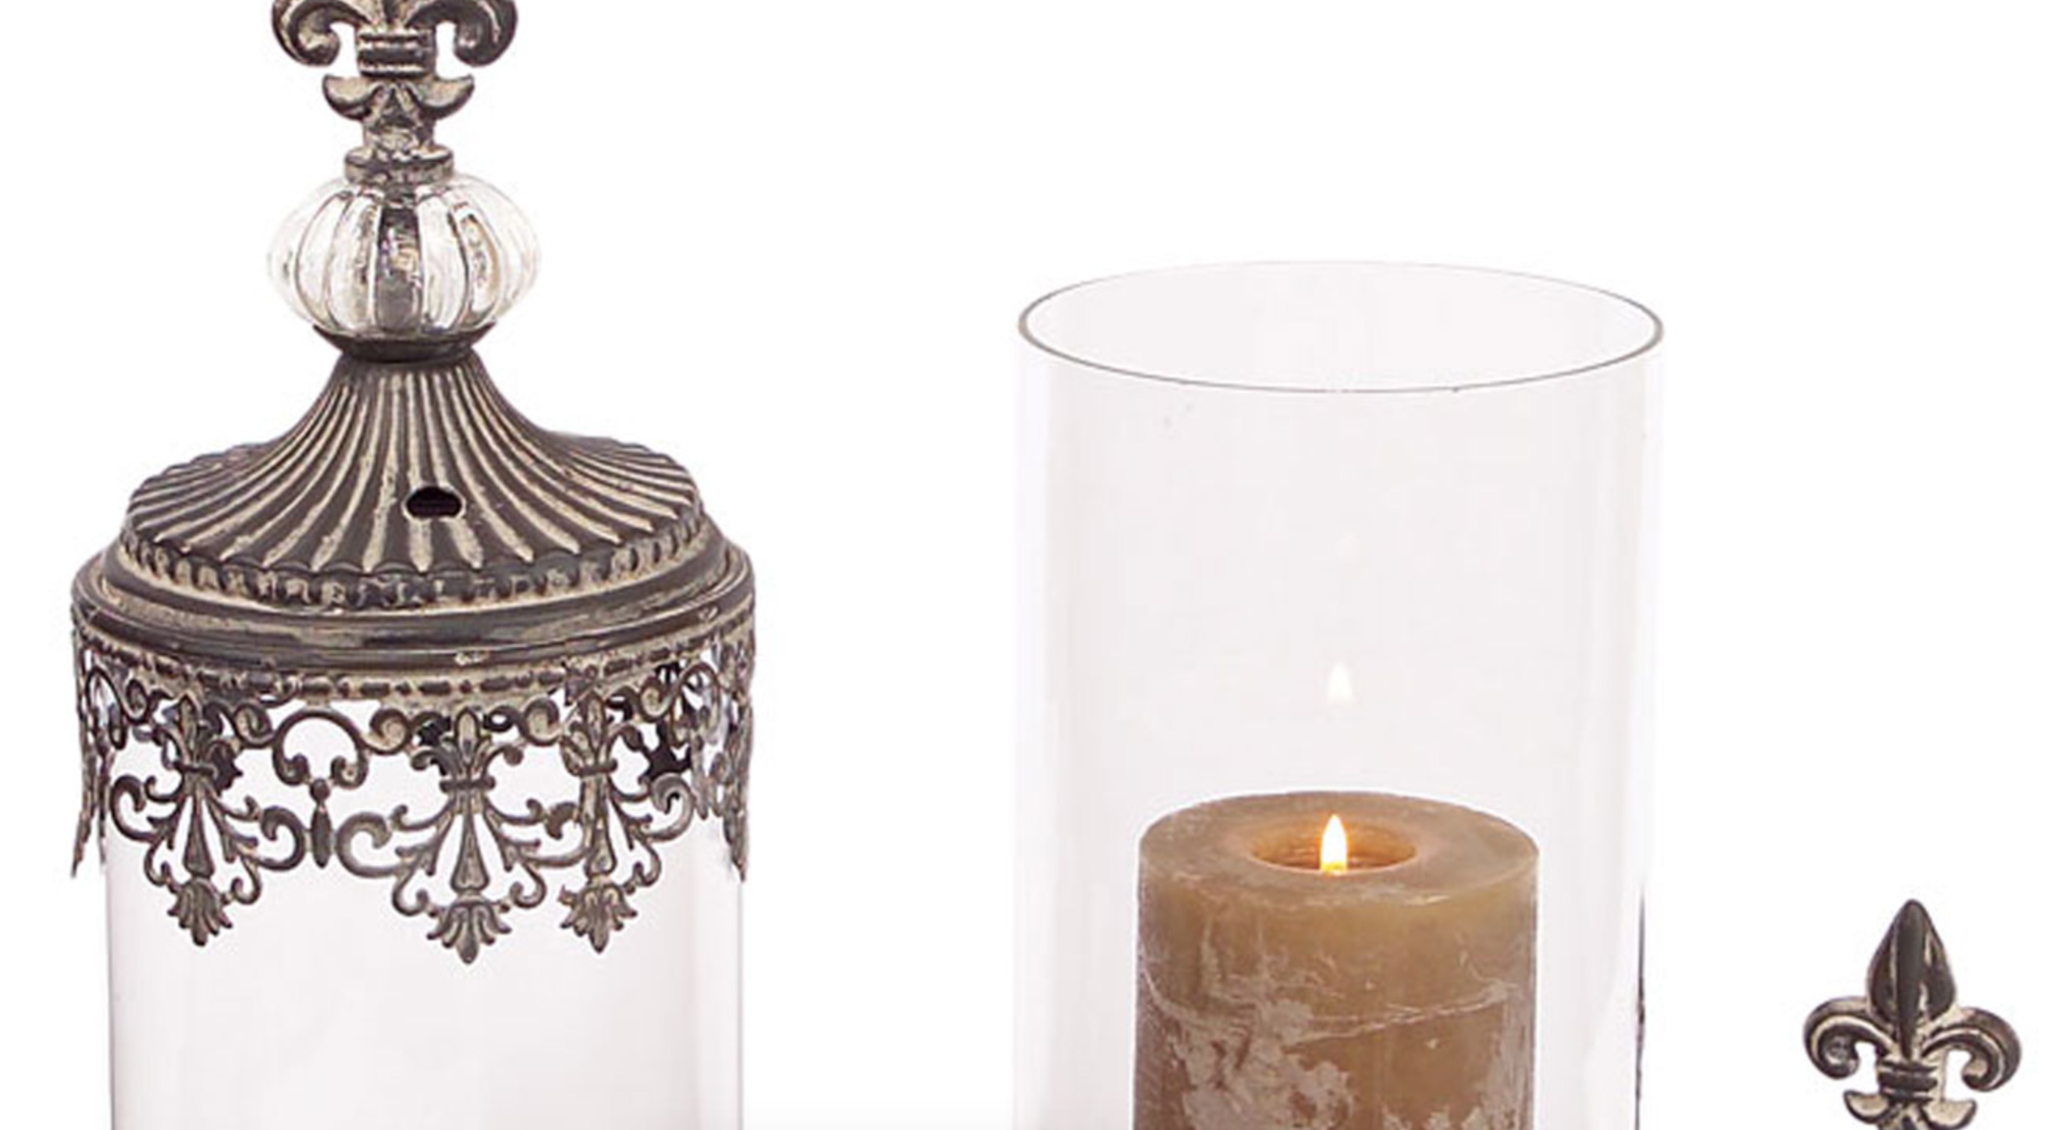 Set of 2 Antique Inspired Glass Candle Holders with Carved Silver Carving